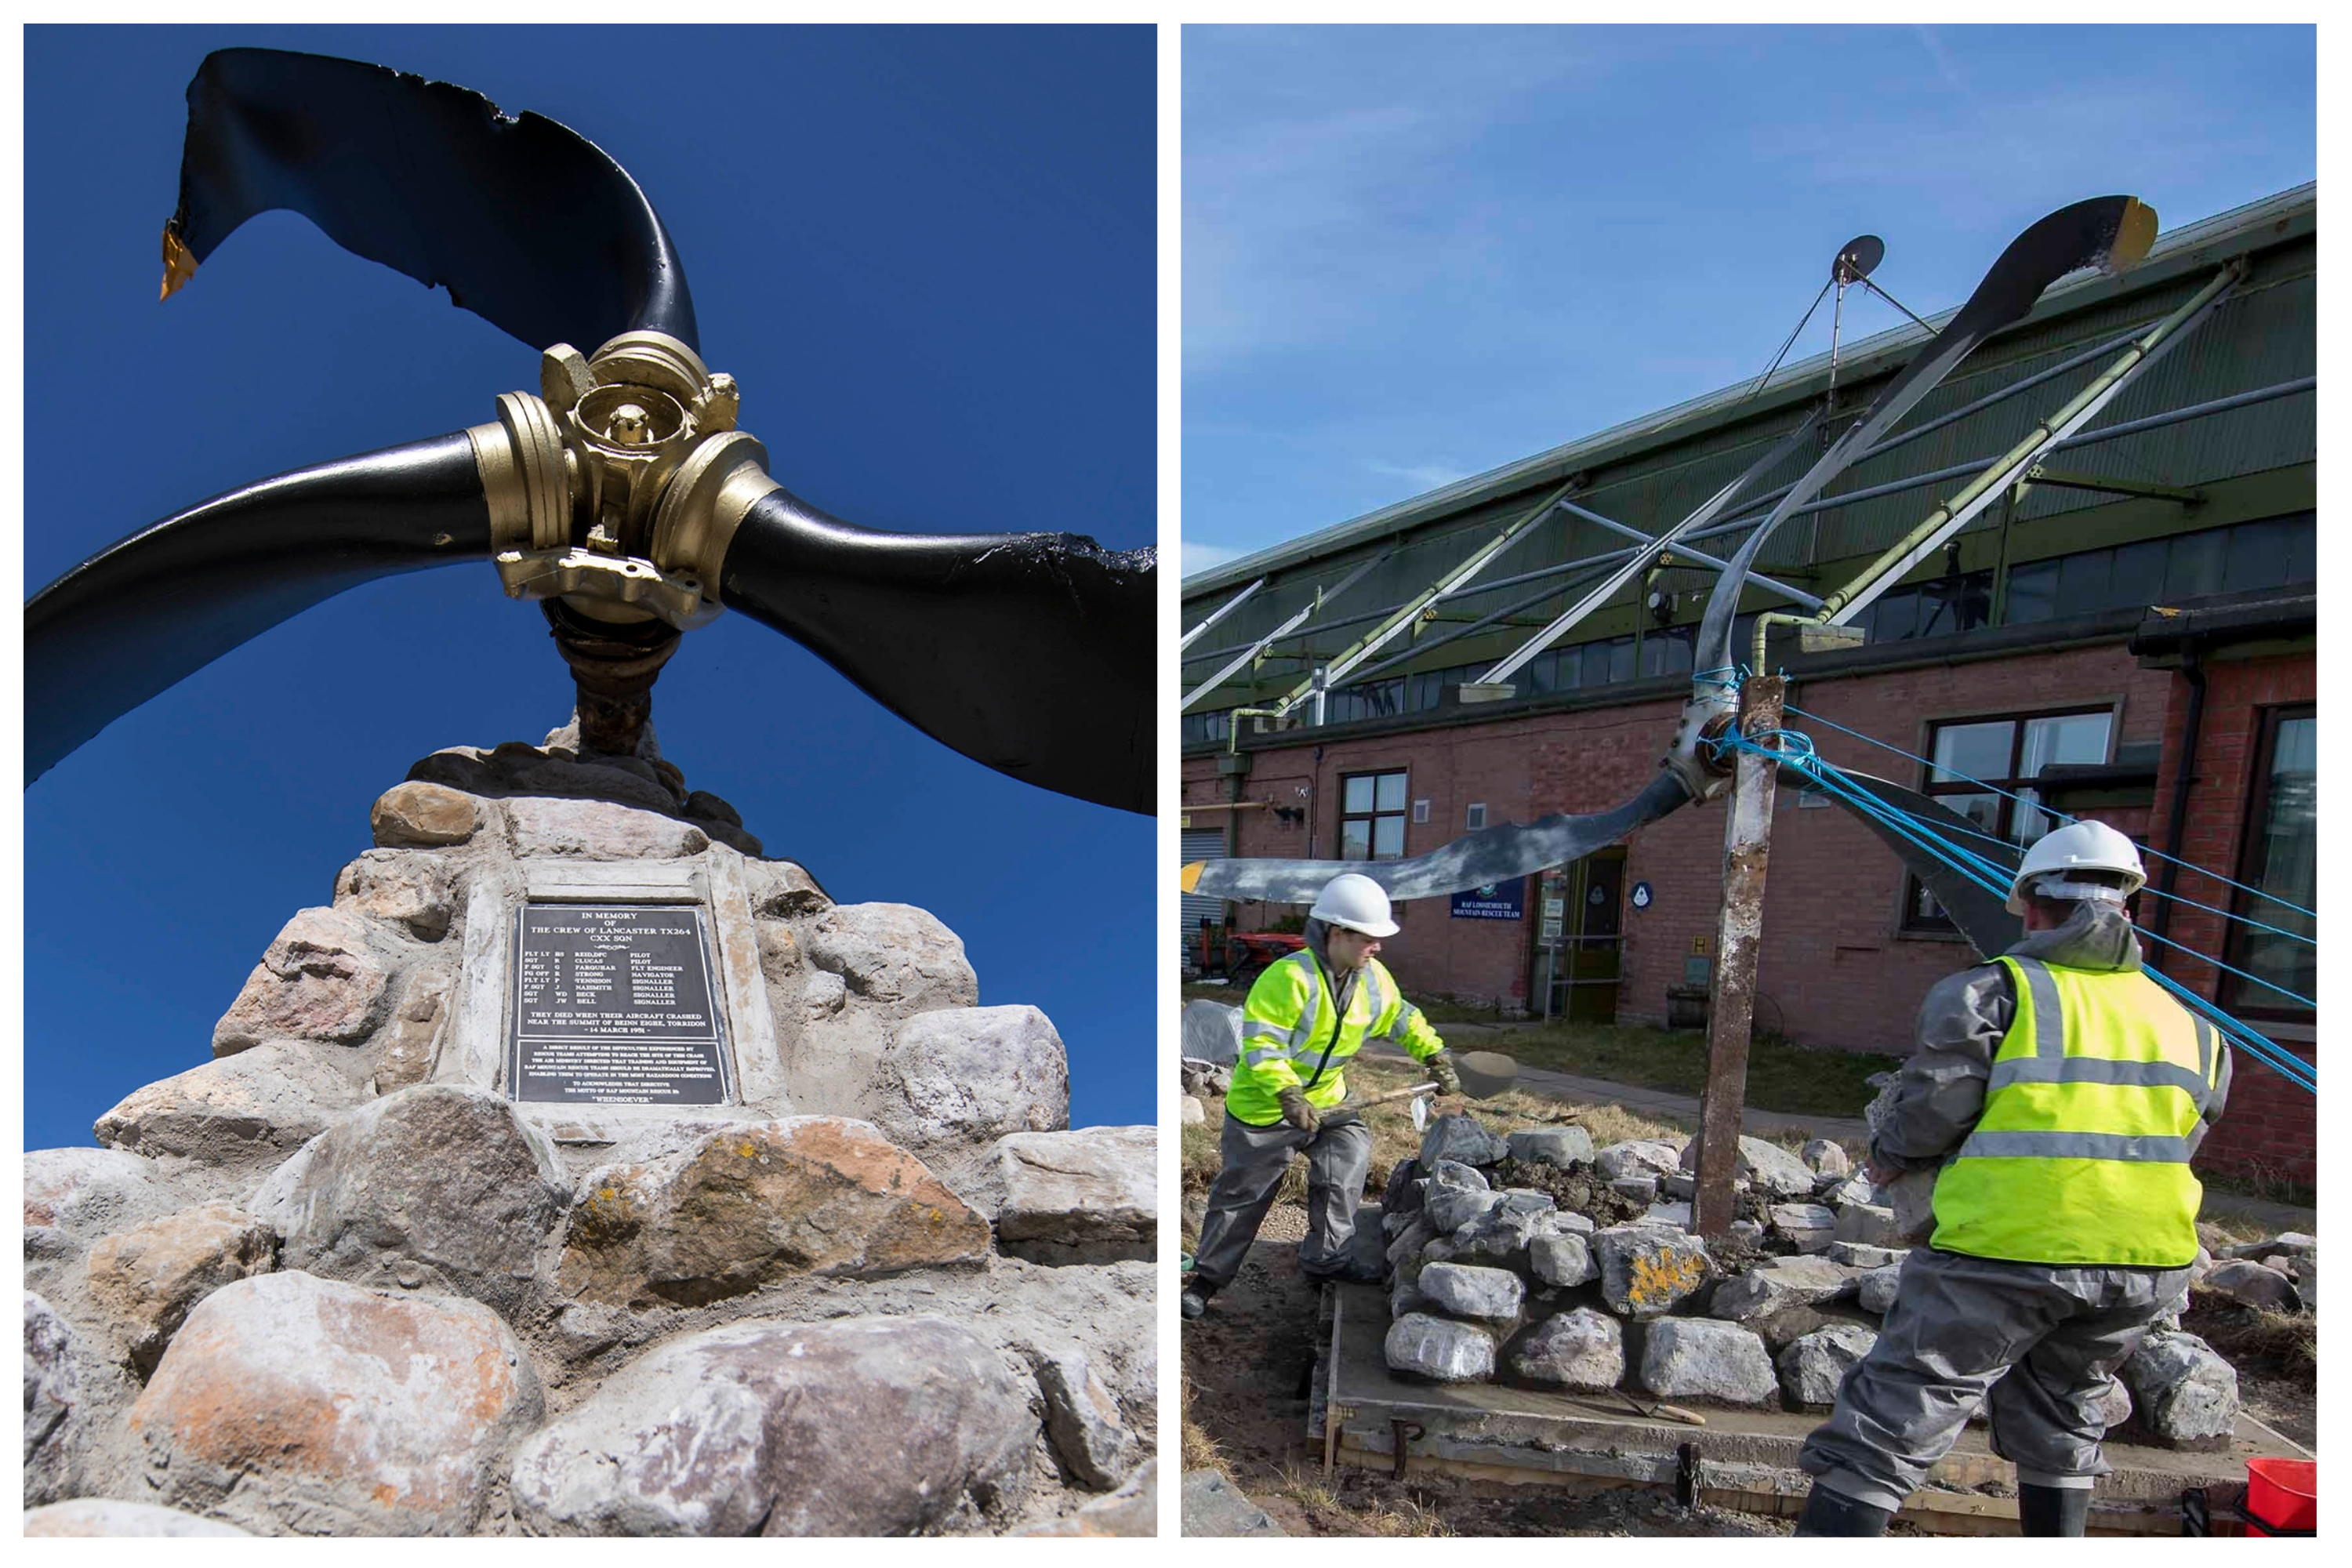 The memorial is dedicated to the eight RAF personnel who died in the tragic accident